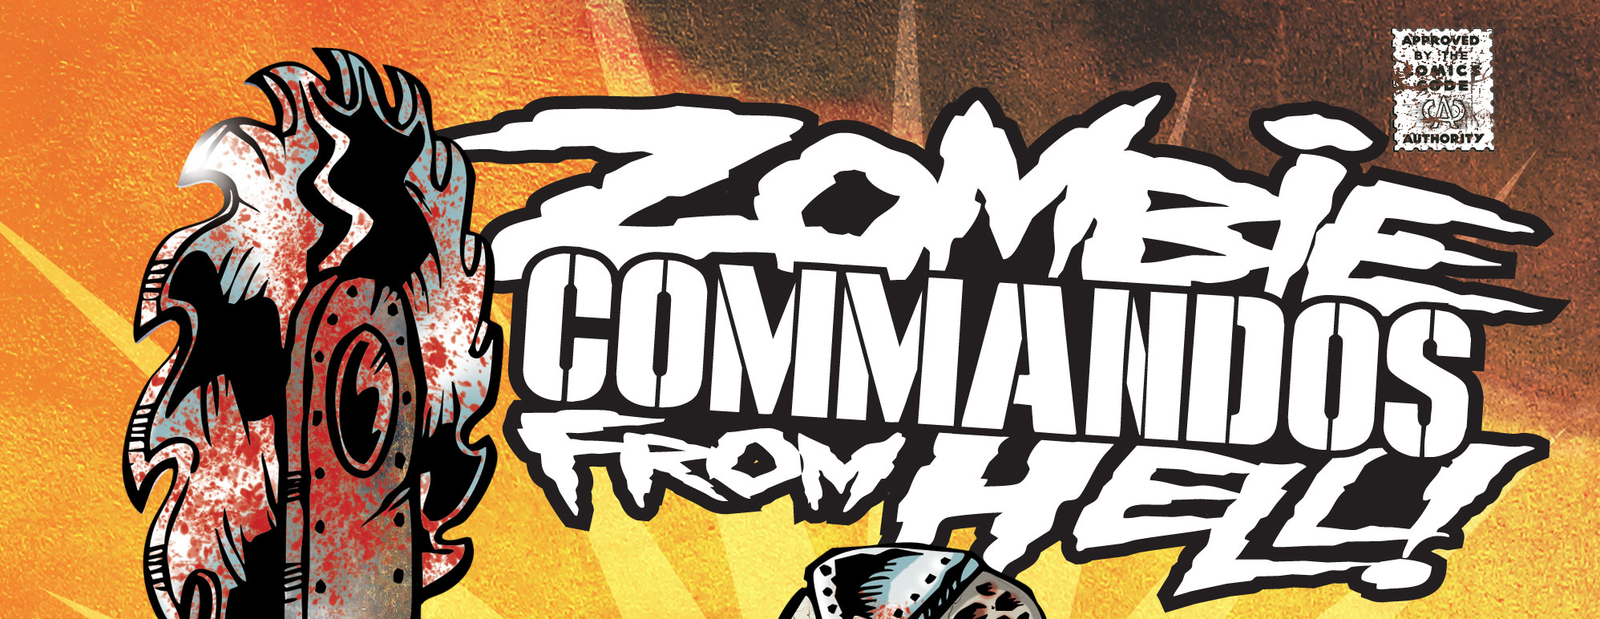 Zombie Commandos From Hell Vol.6, un comics post-apocalyptiqe québécois !